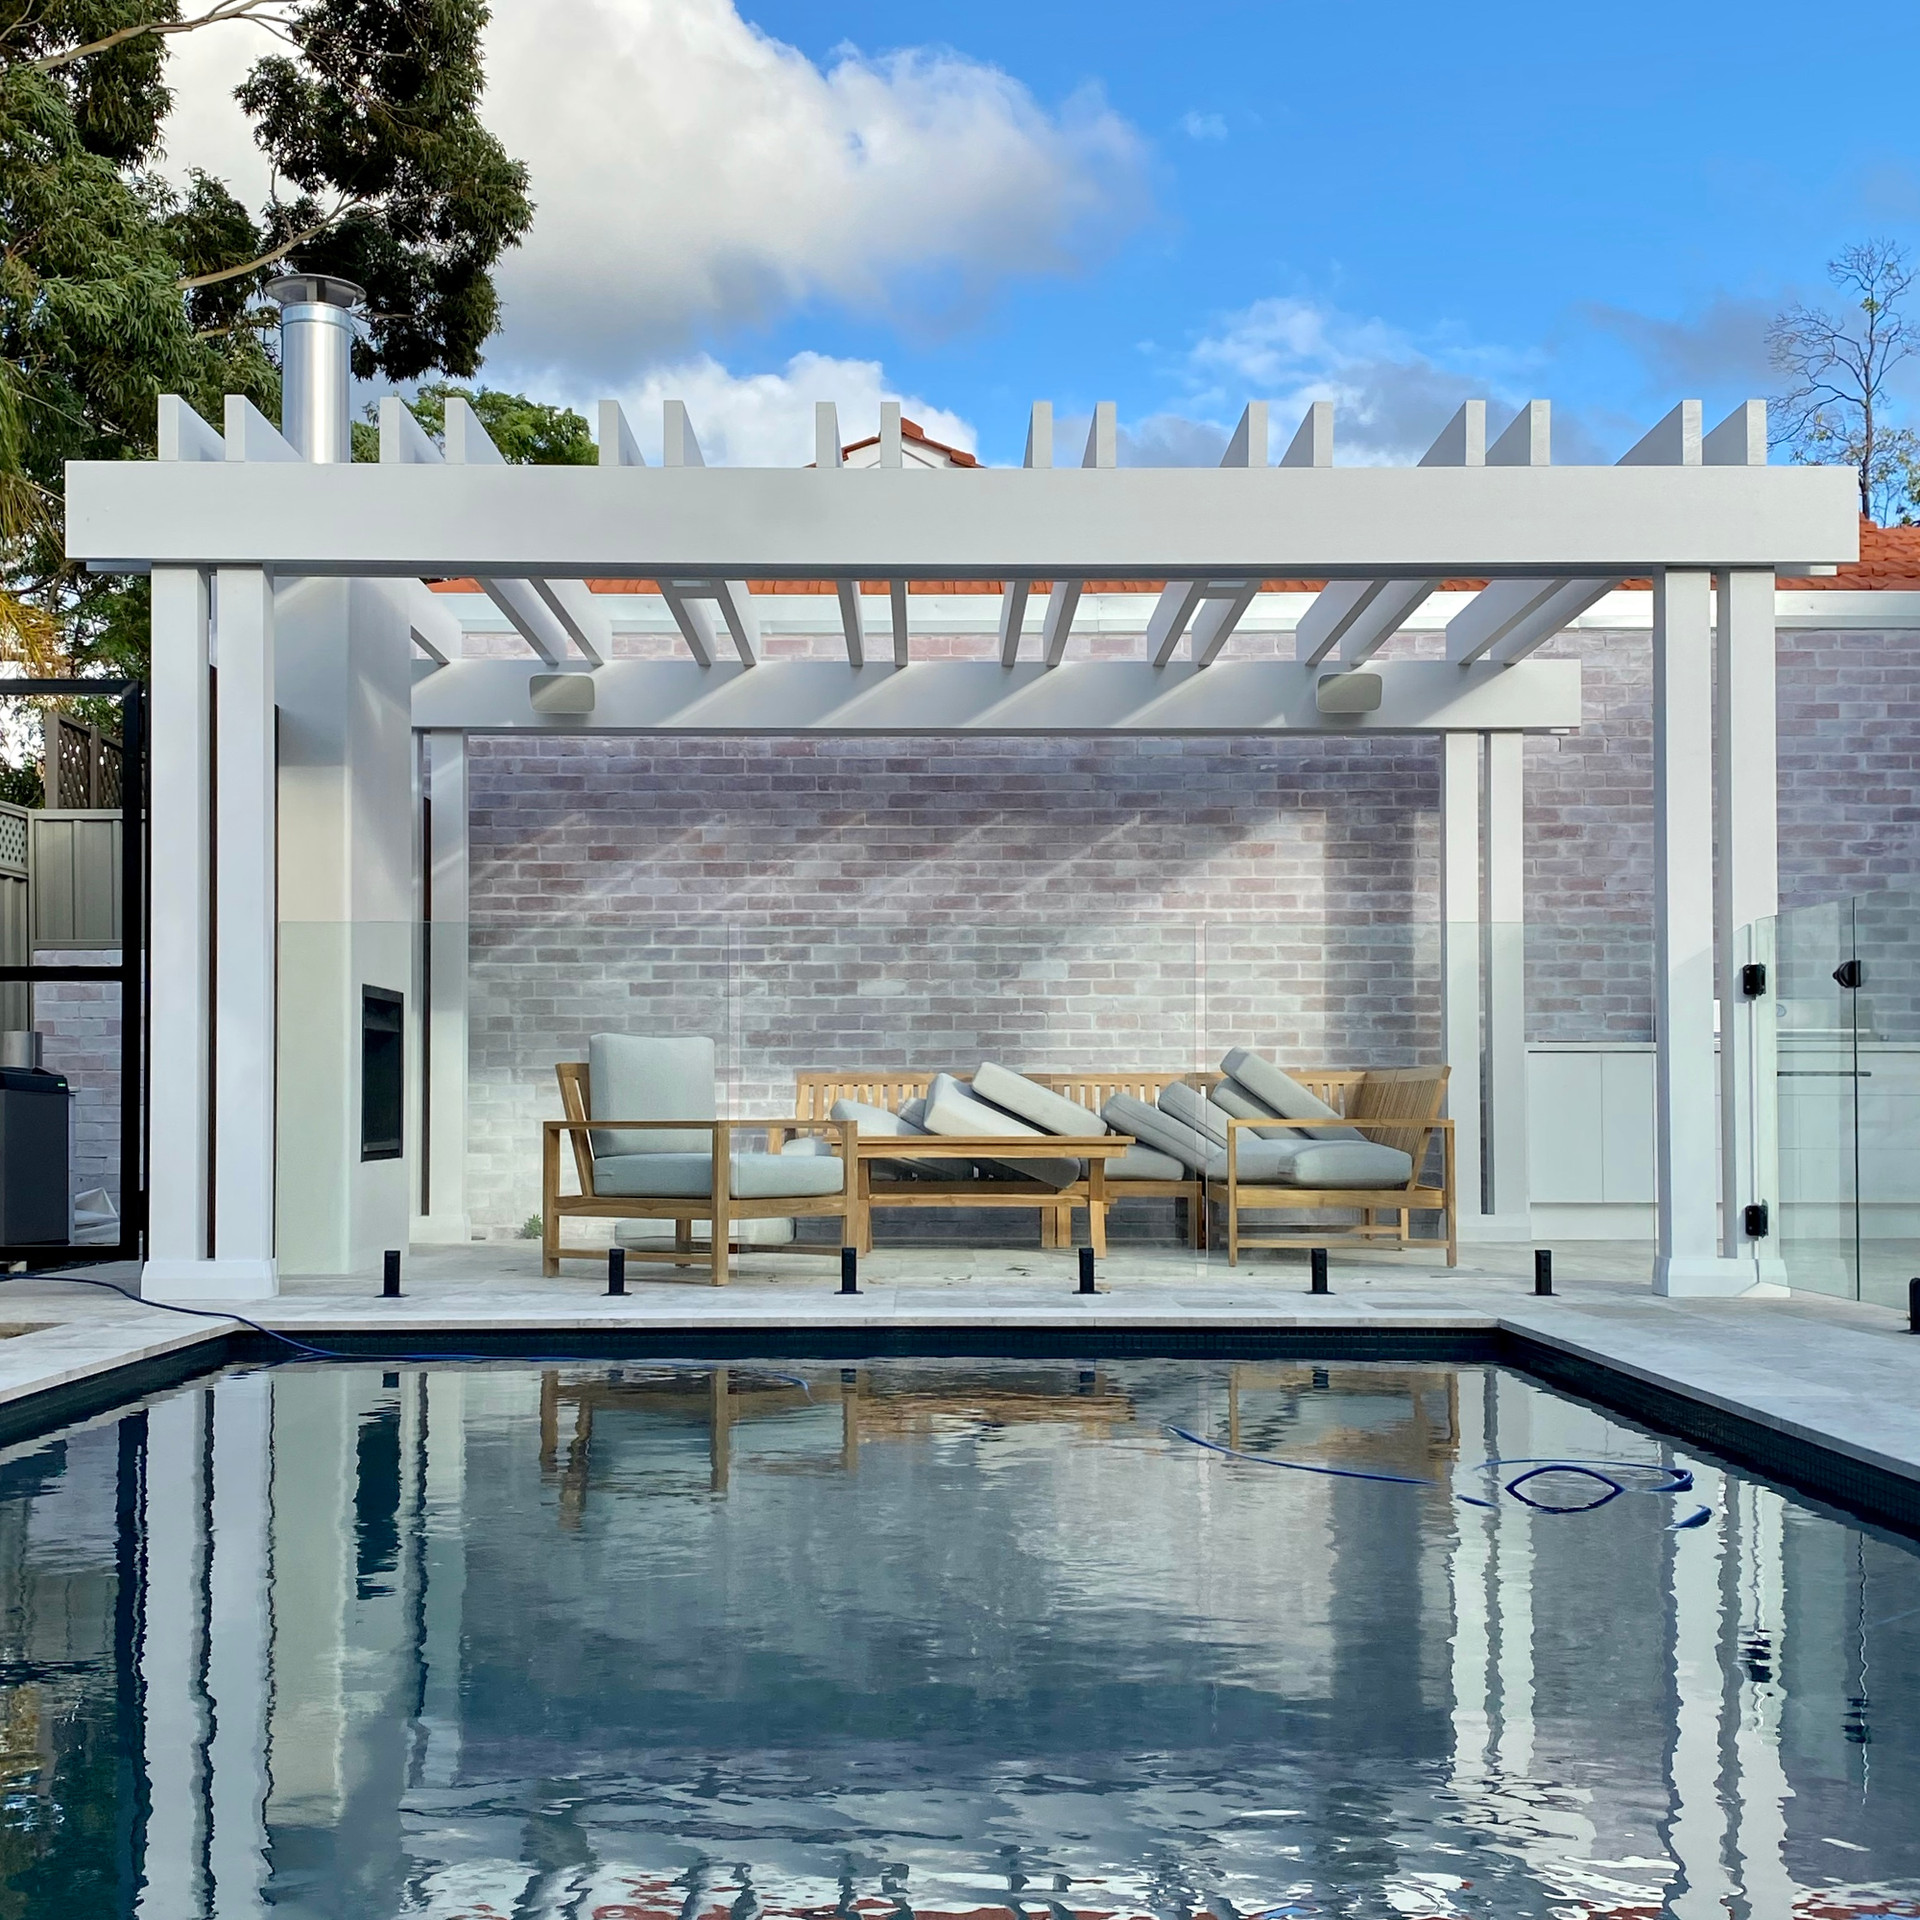 Mount Lawley outdoor fireplace, alfresco and structure by designer tristanpeirce Landscape Architecture Pool and Garden Design